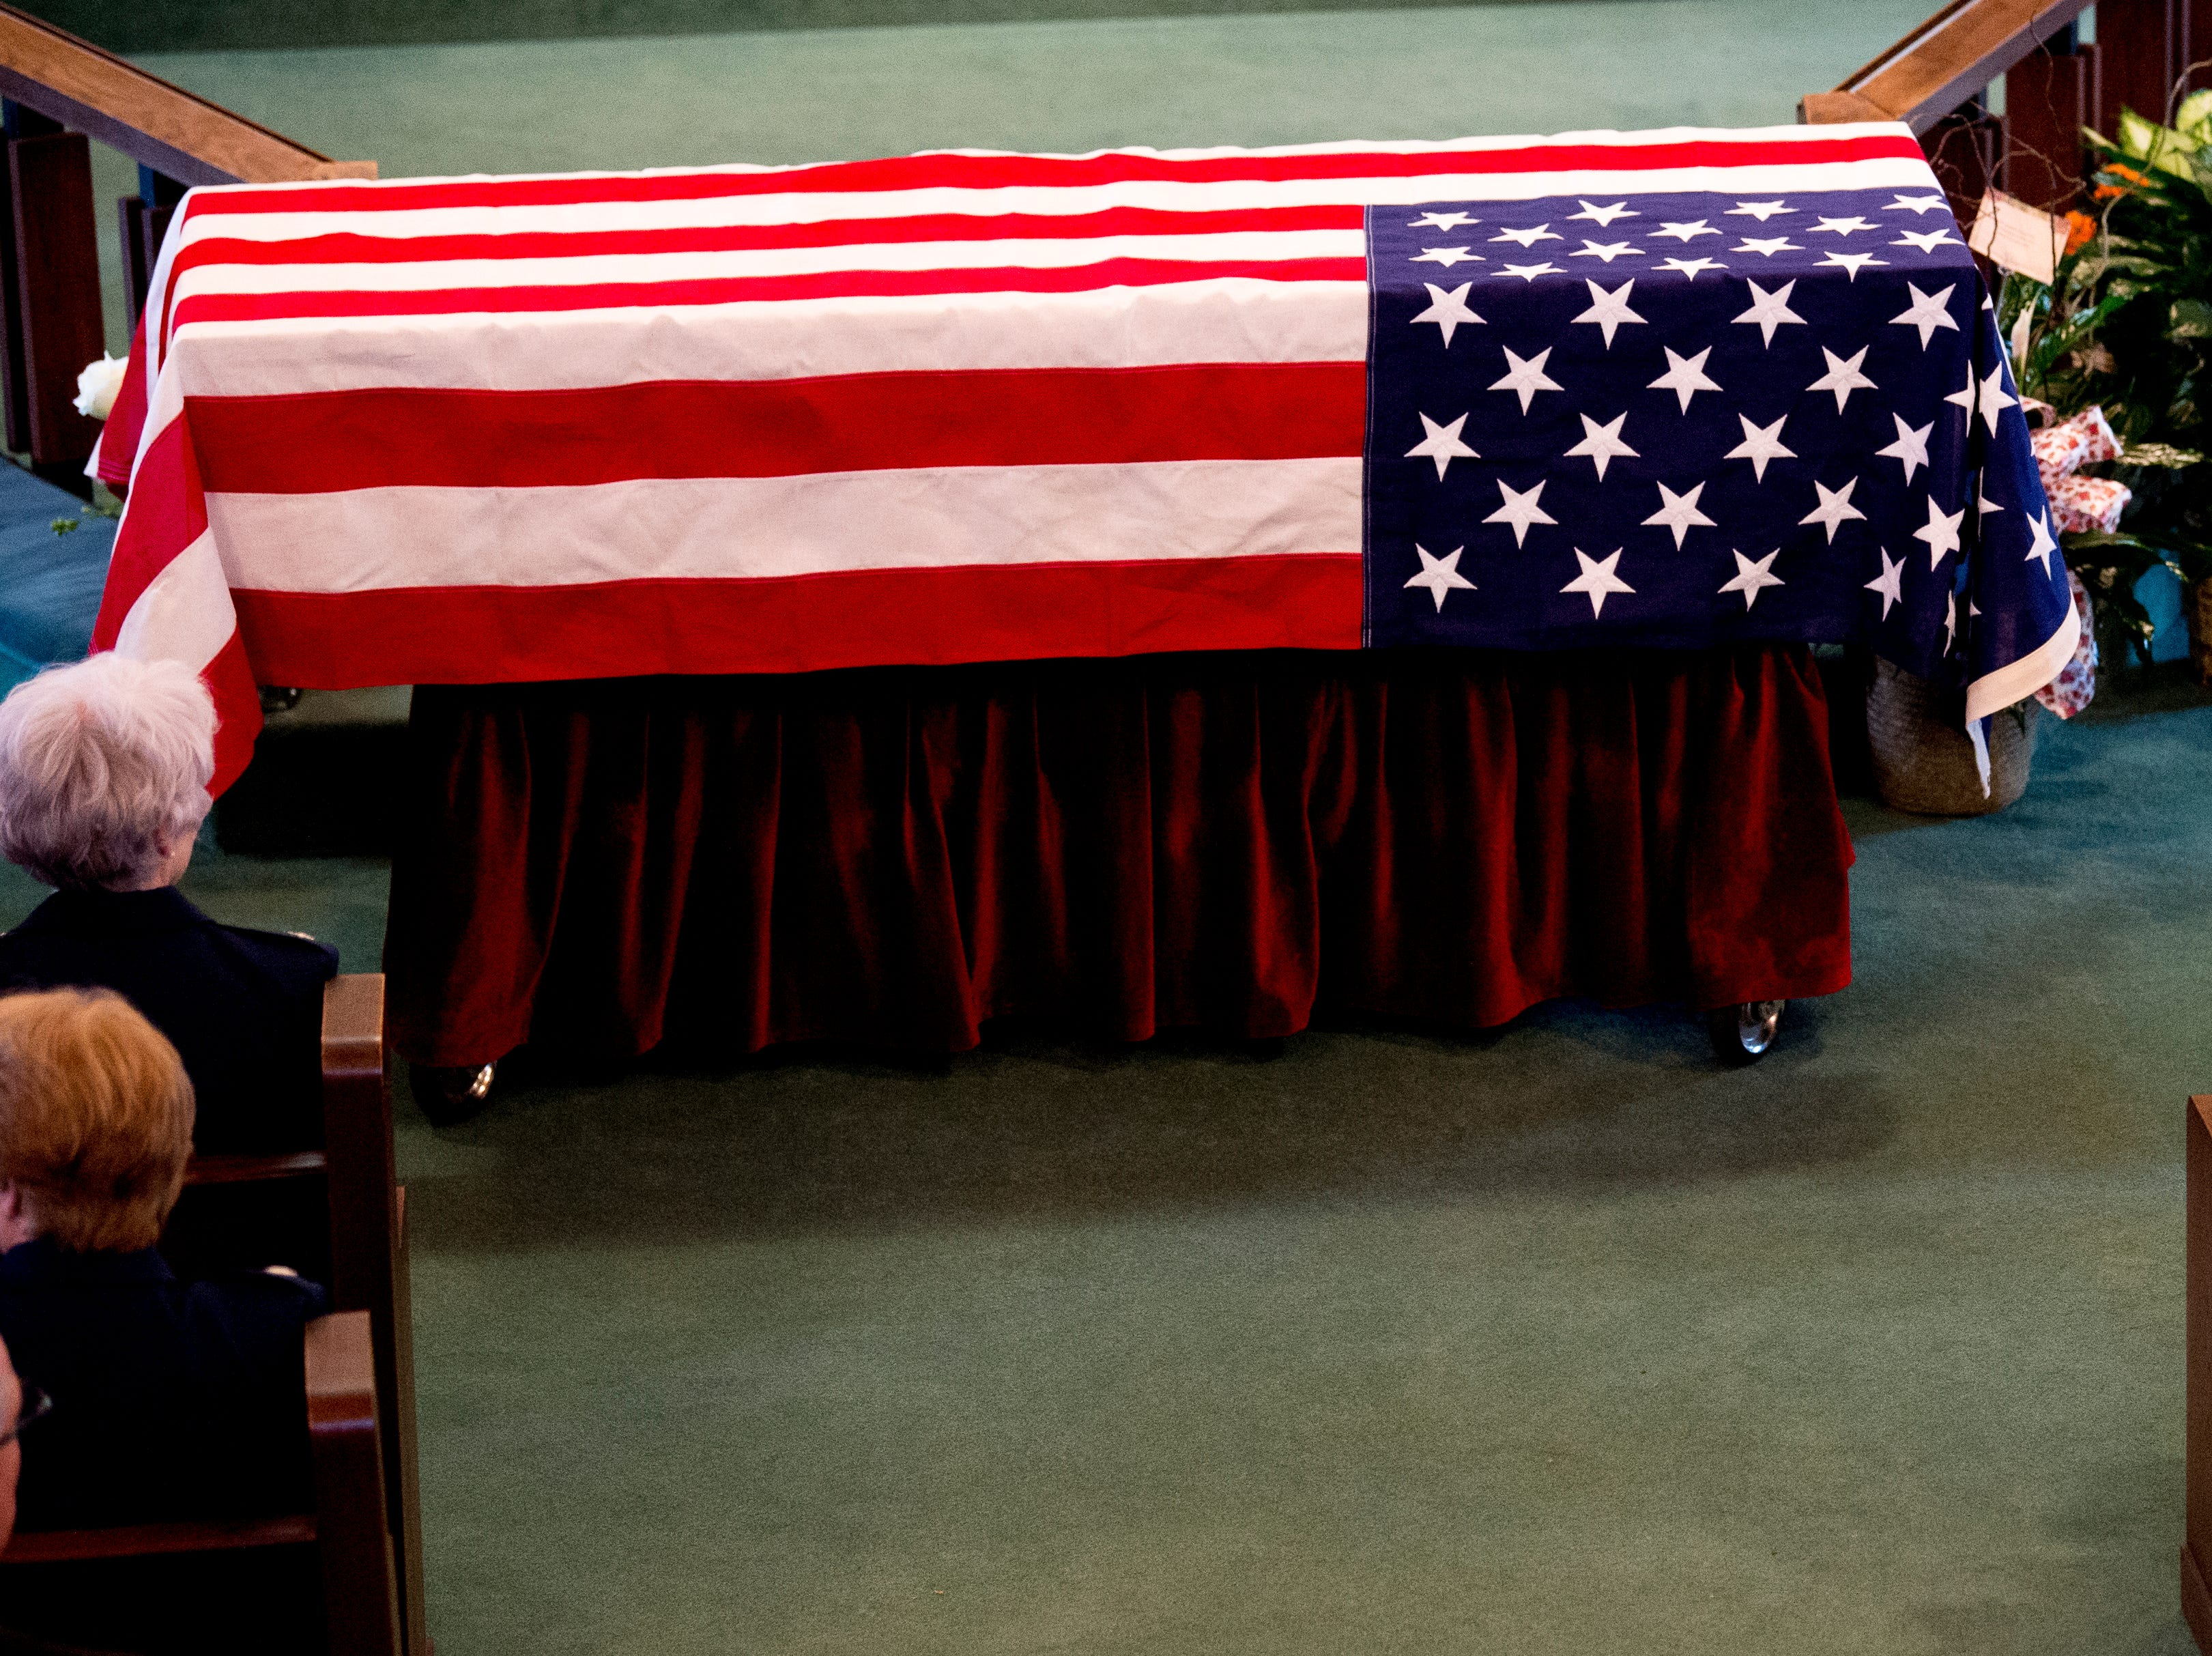 The casket of Rosemary Mariner, the US Navy's first female fighter pilot, at Norris United Methodist Church in Norris, Tennessee on Saturday, February 2, 2019. Mariner died January 24th of cancer.